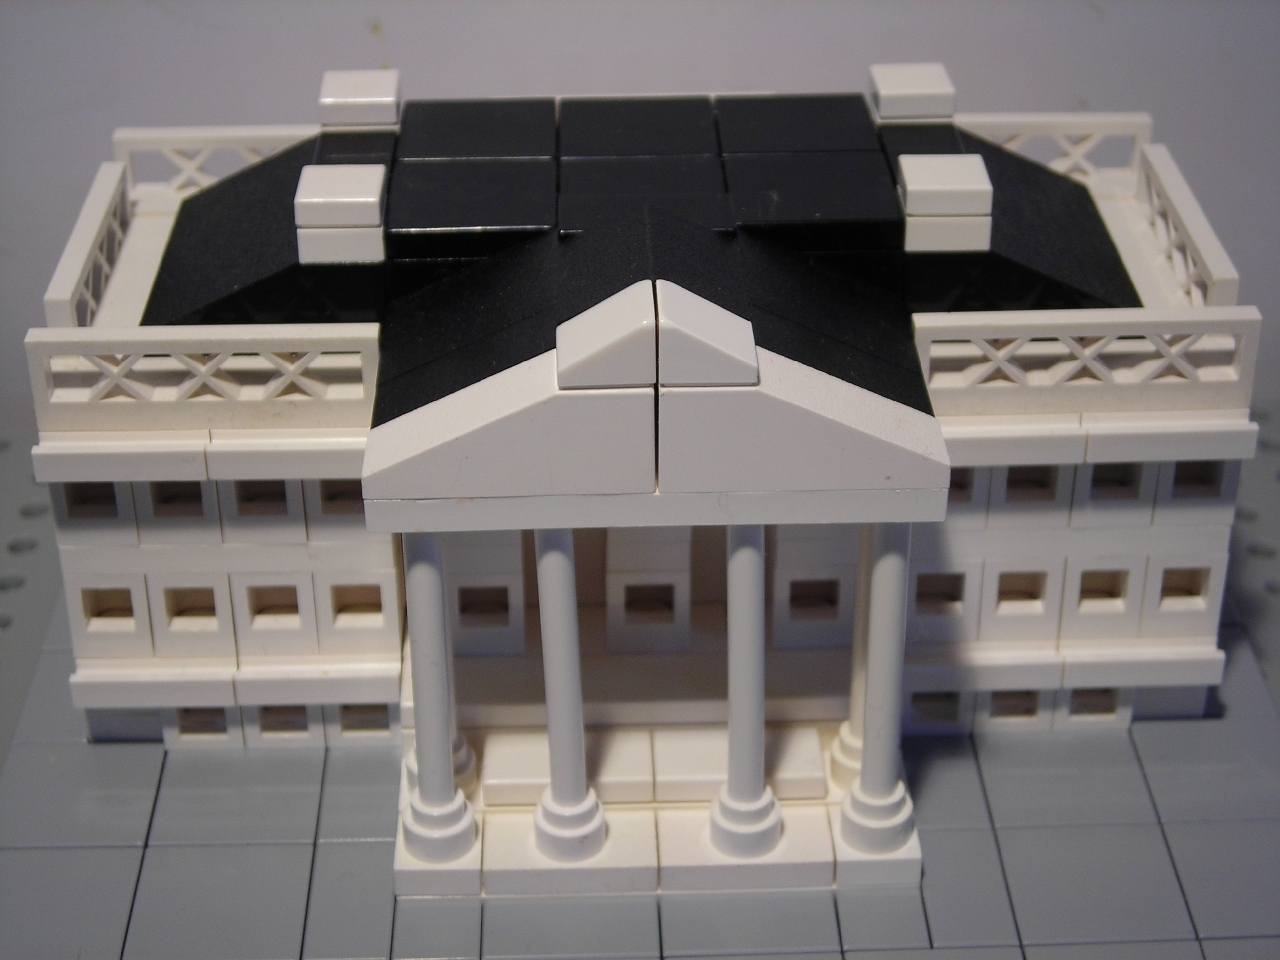 whitehouse05.jpg